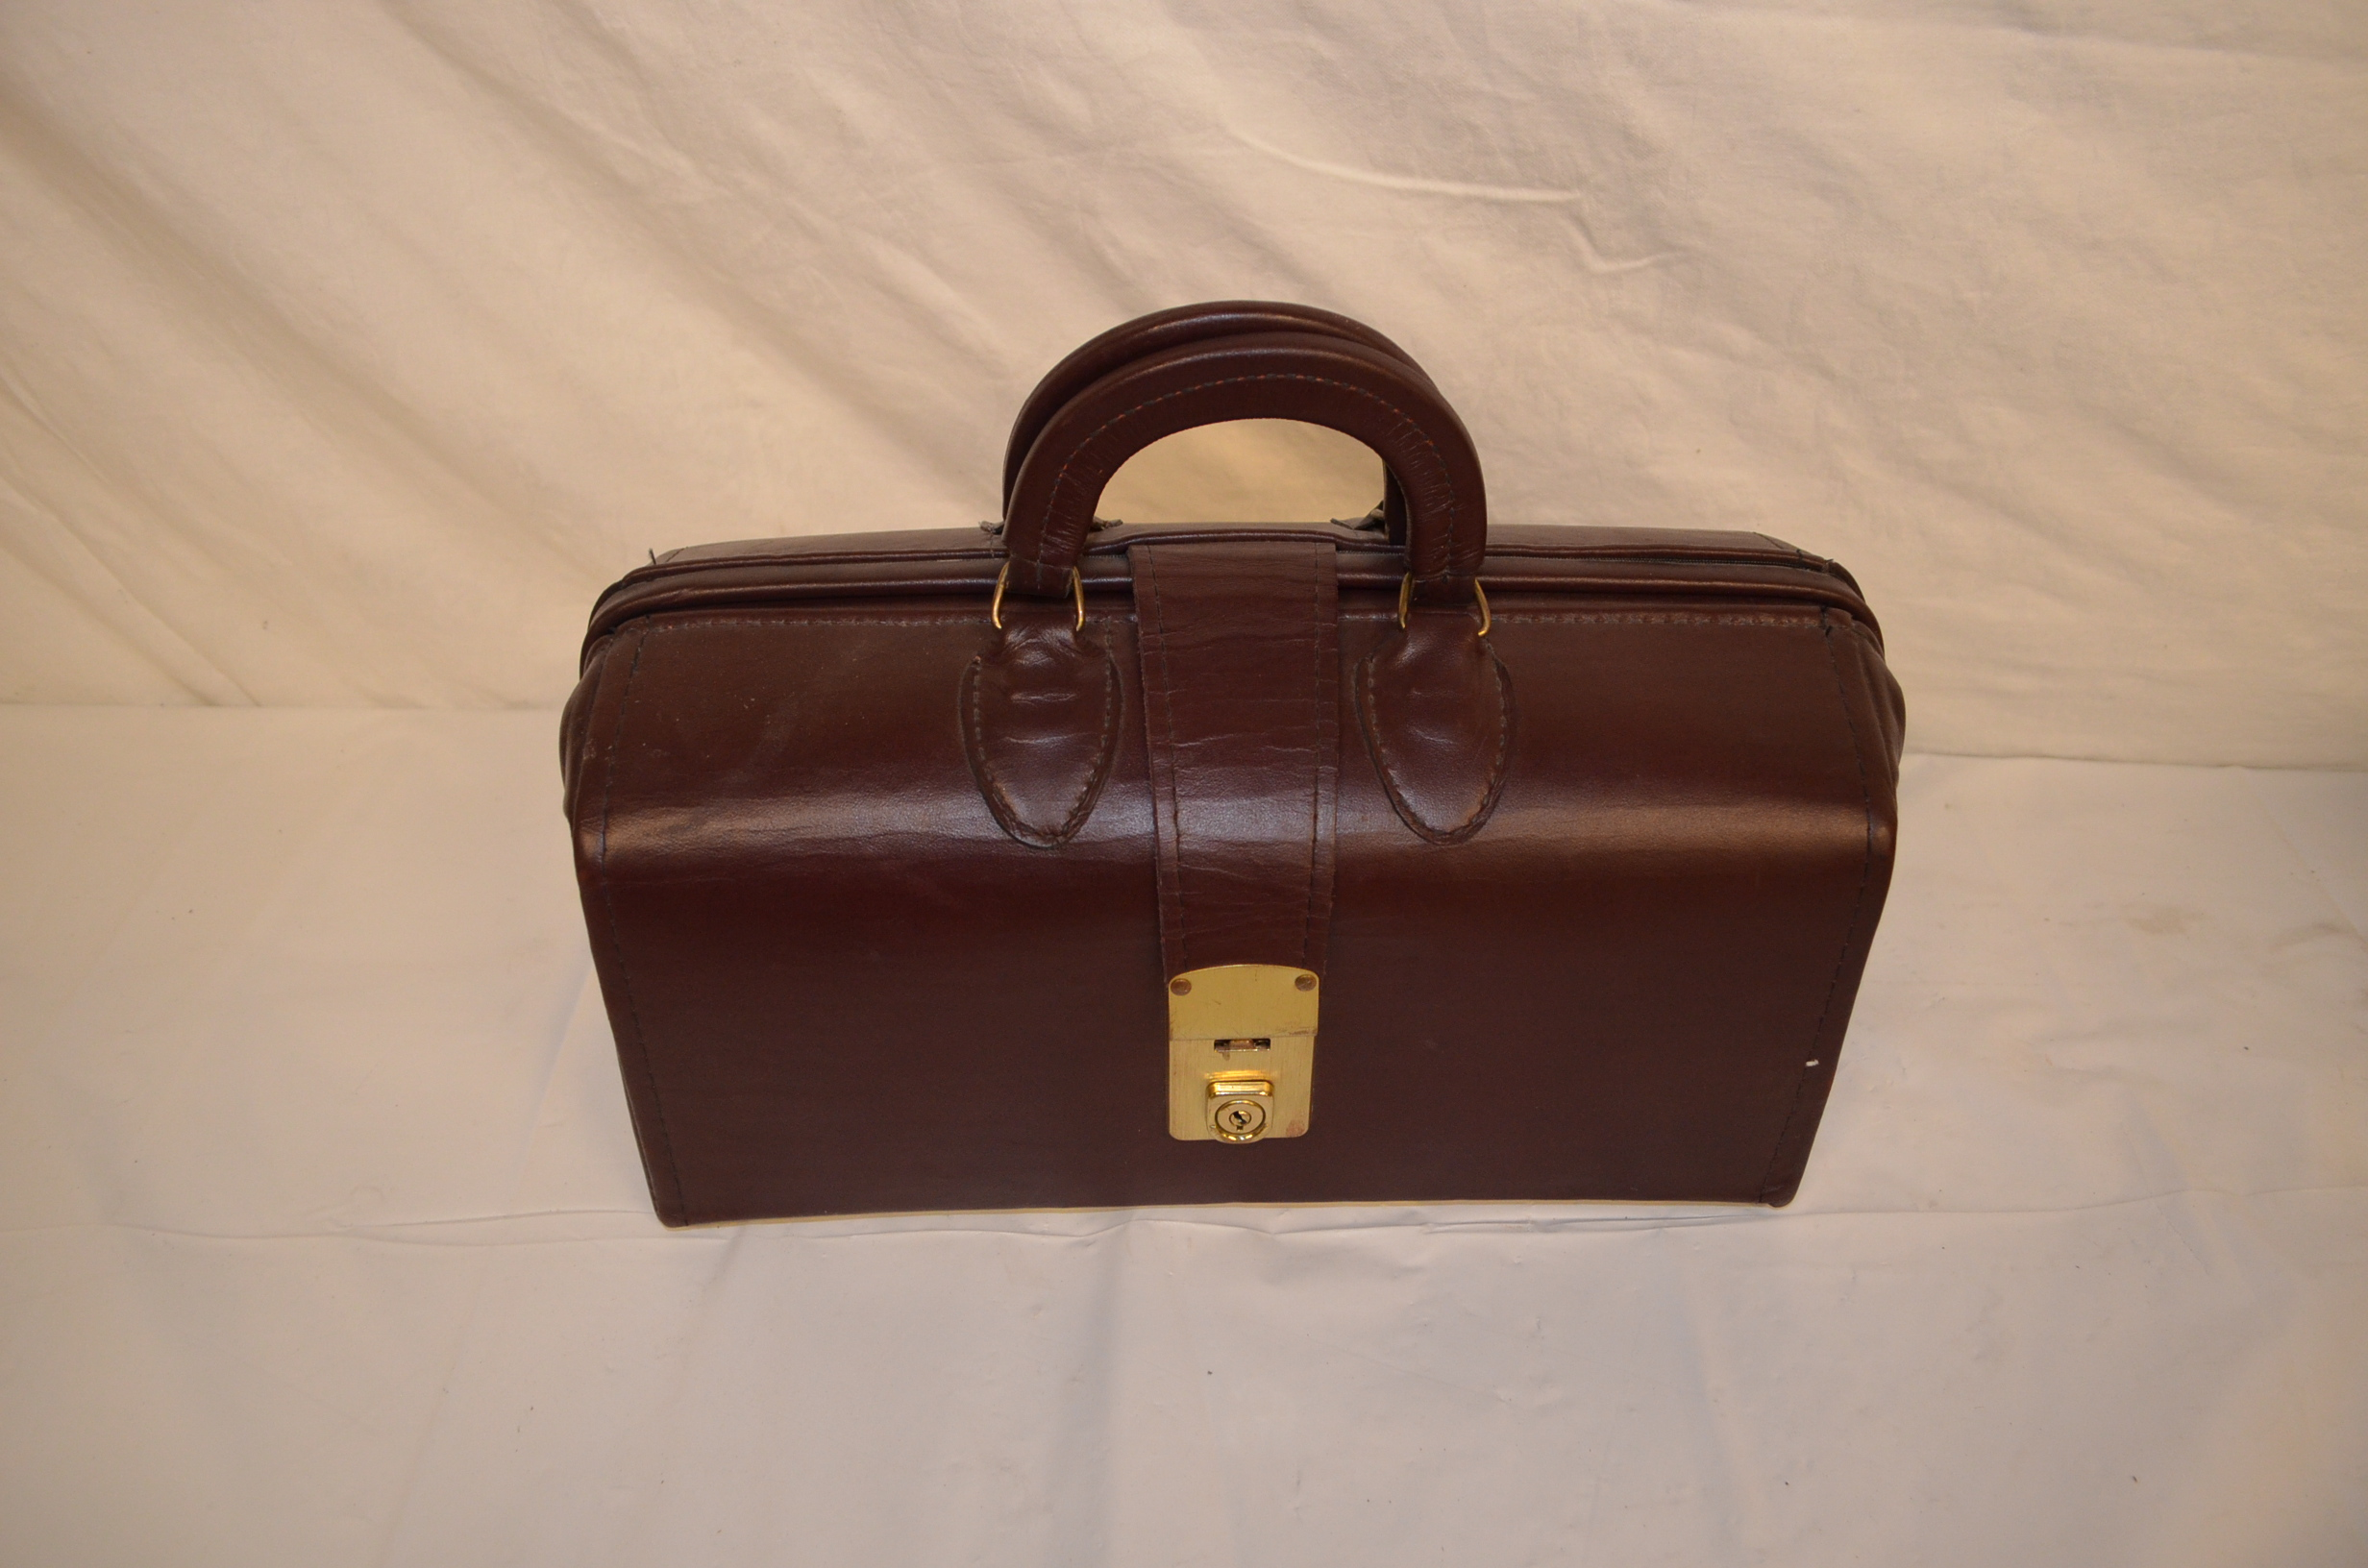 Period leather doctors bag